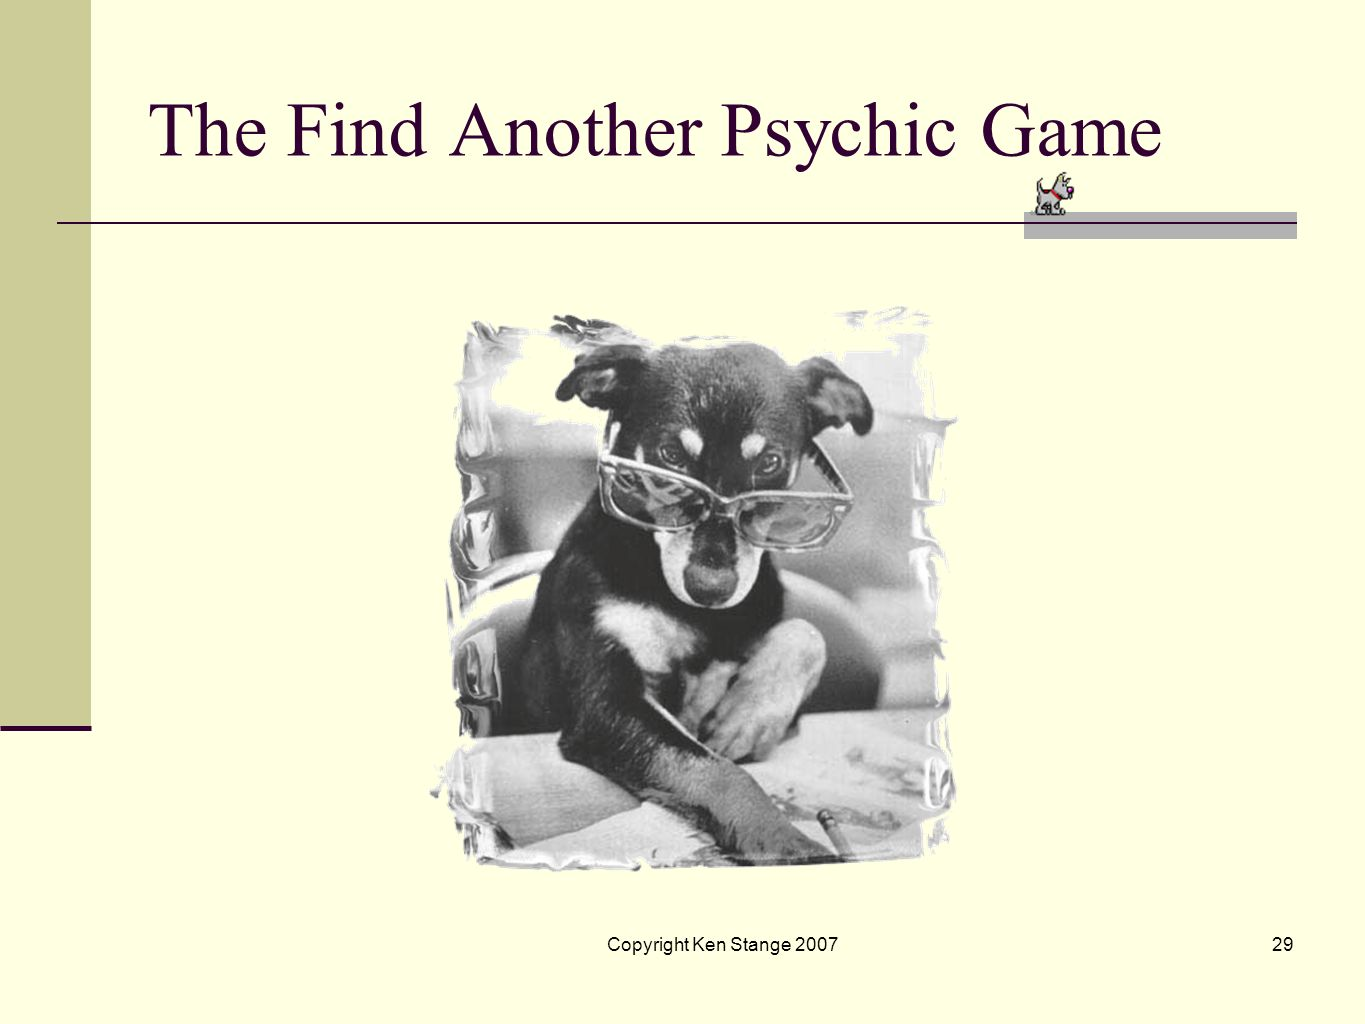 The Find Another Psychic Game